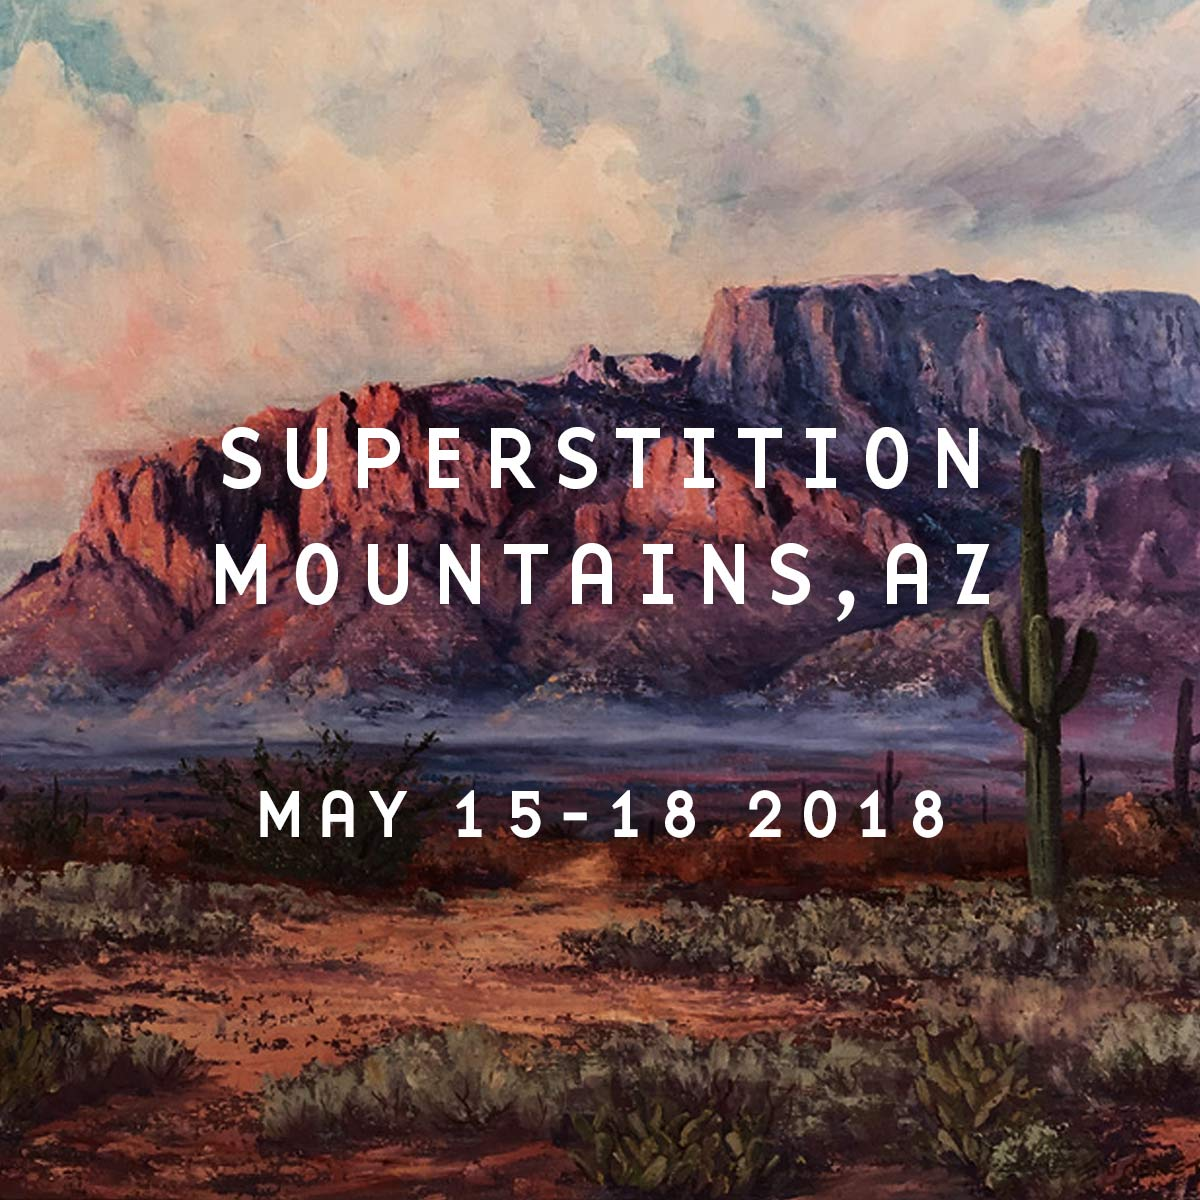 superstitionmountains.jpg